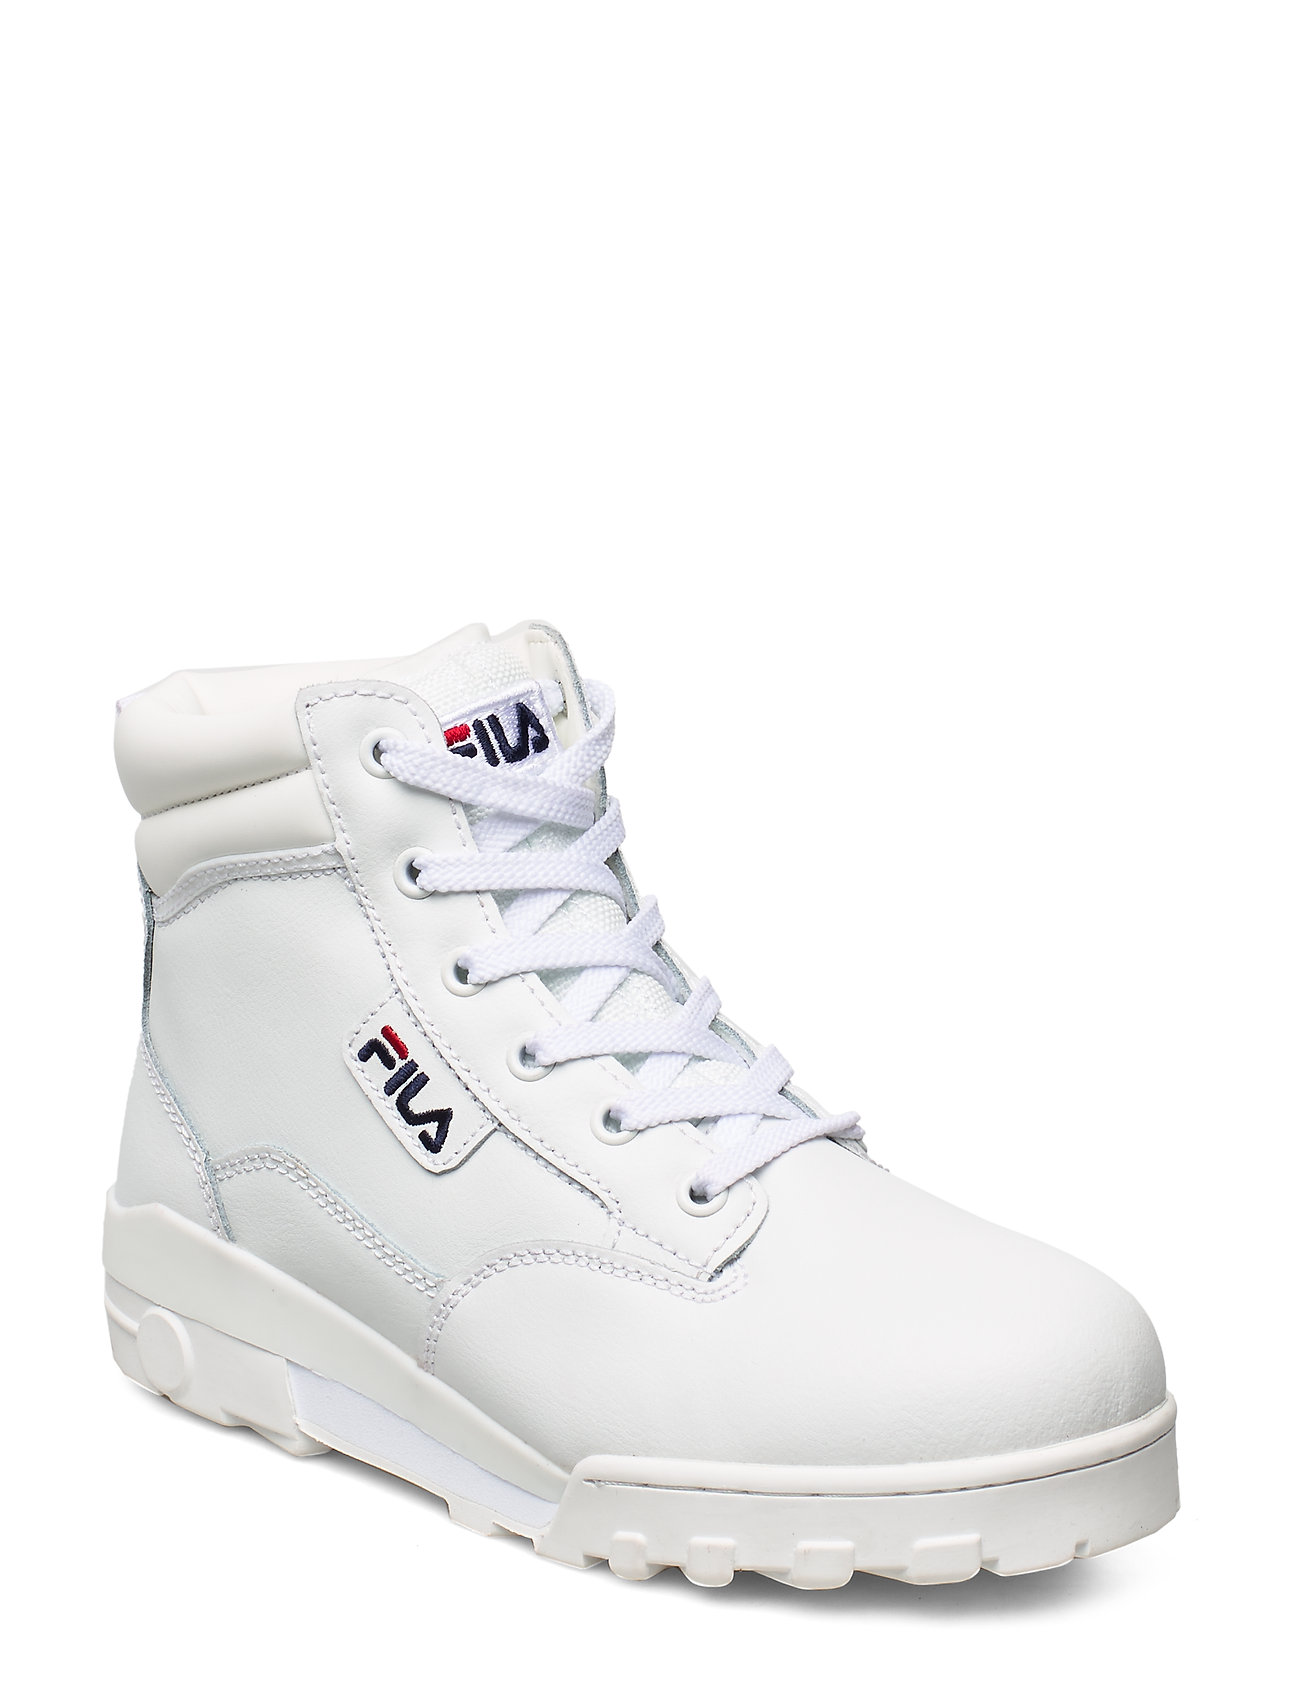 FILA Grunge Ii L Mid Wmn Shoes Boots Ankle Boots Ankle Boots Flat Heel Weiß FILA